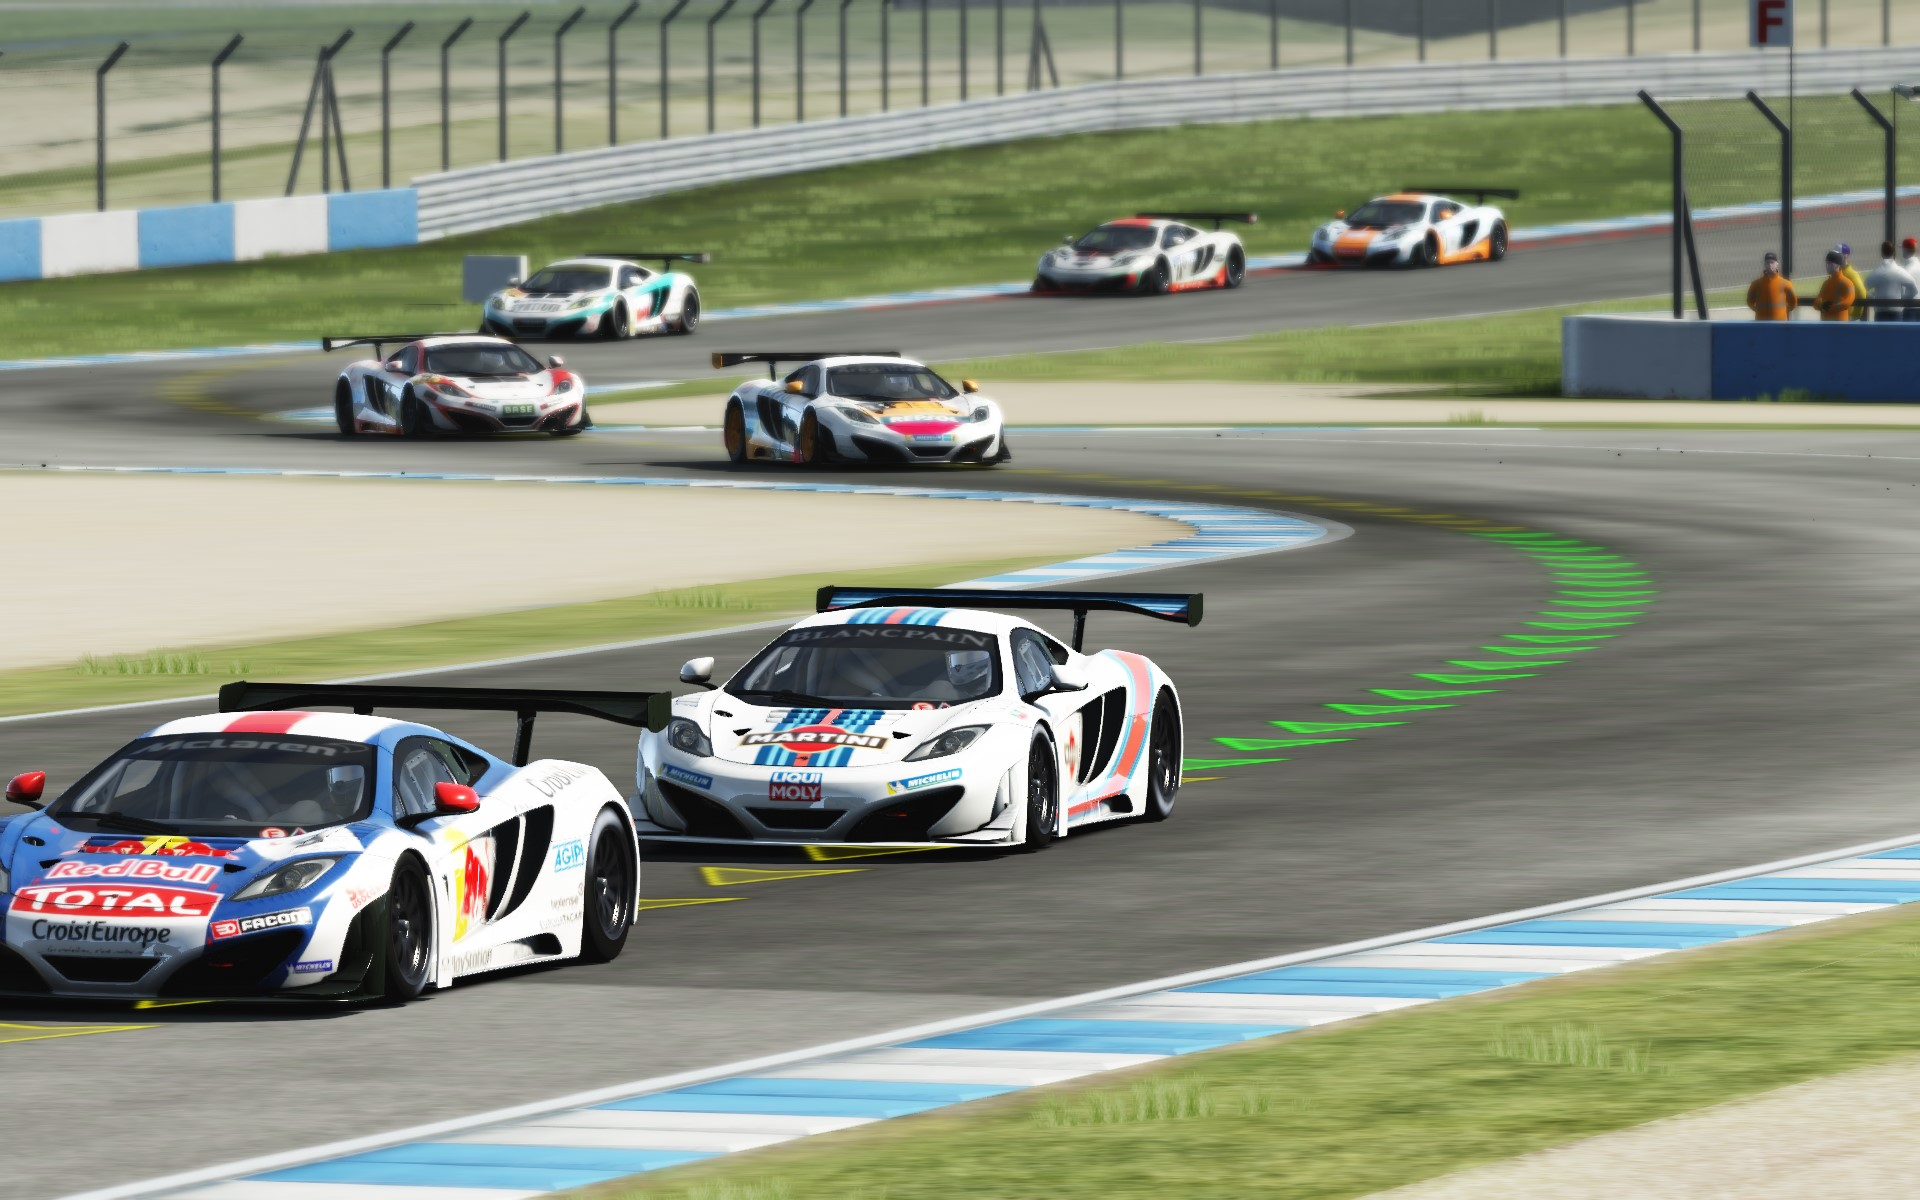 Screenshot_mclaren_mp412c_gt3_doningtonpark_16-6-115-15-35-42.jpg